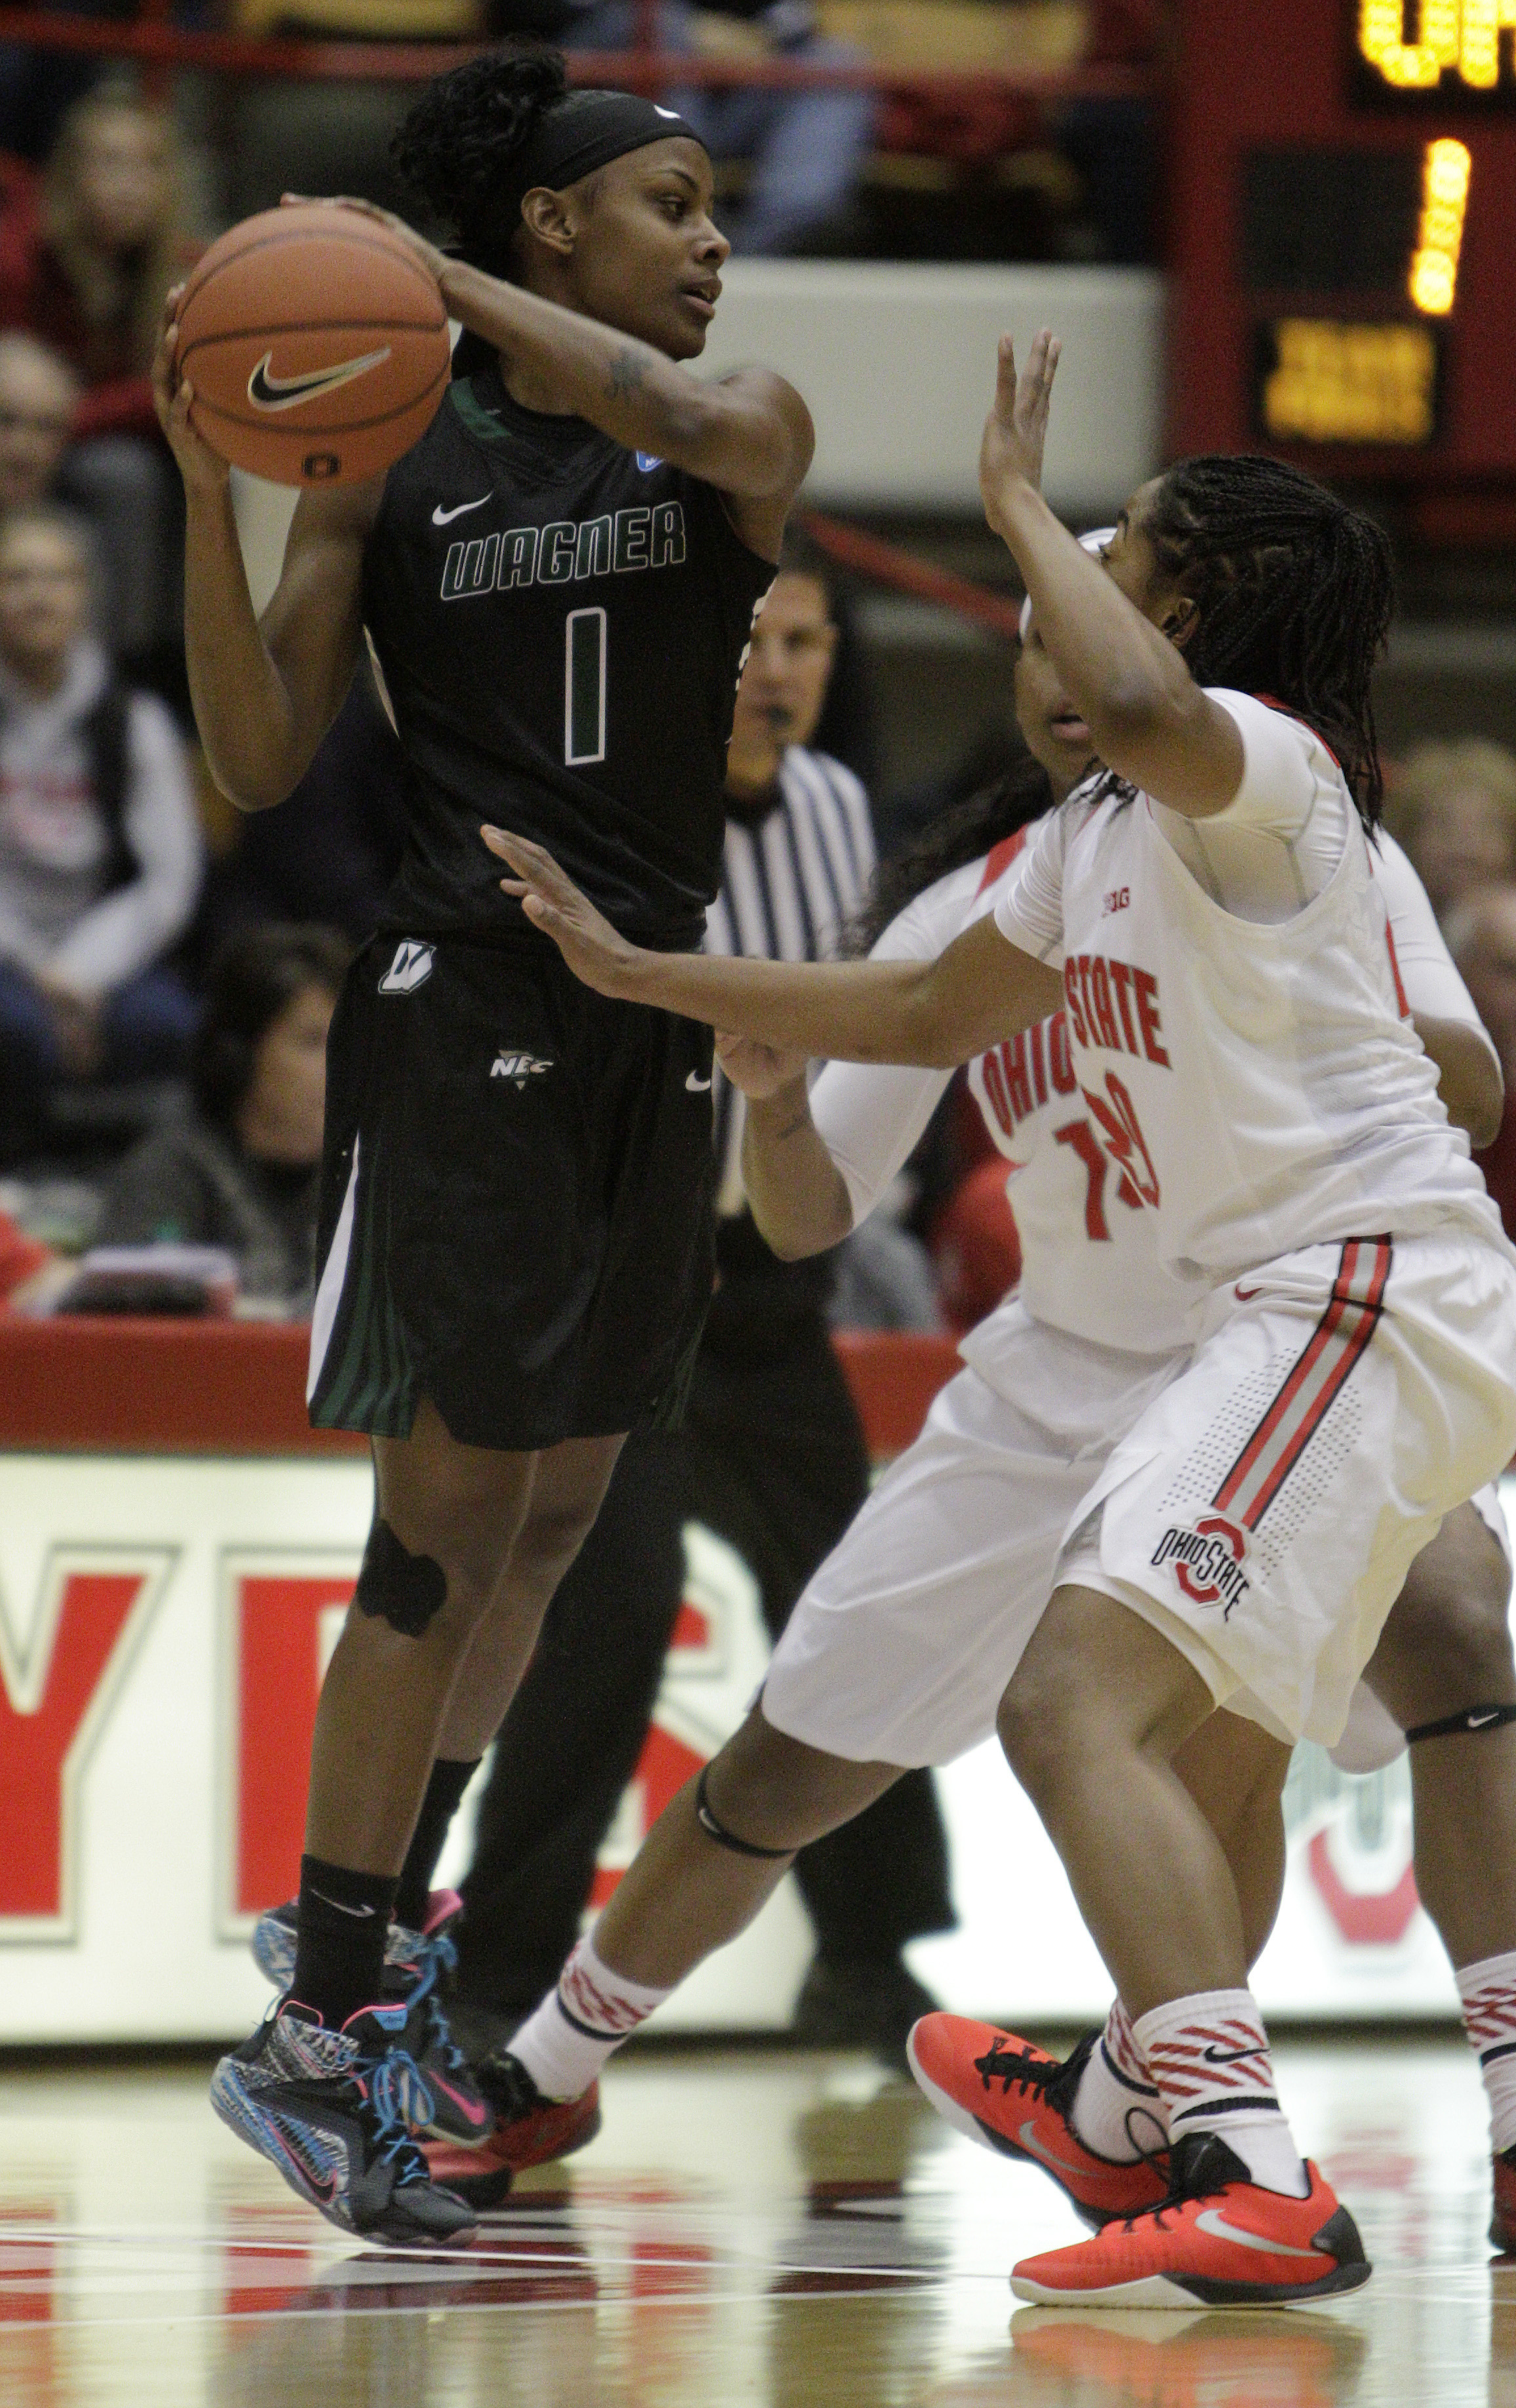 Wagner's Jasmine Nwajei, left, looks for an open pass as Ohio State's Ameryst Alston, center, and Asia Doss defend during the first quarter of an NCAA college basketball game Sunday, Nov. 22, 2015, in Columbus, Ohio. (AP Photo/Jay LaPrete)